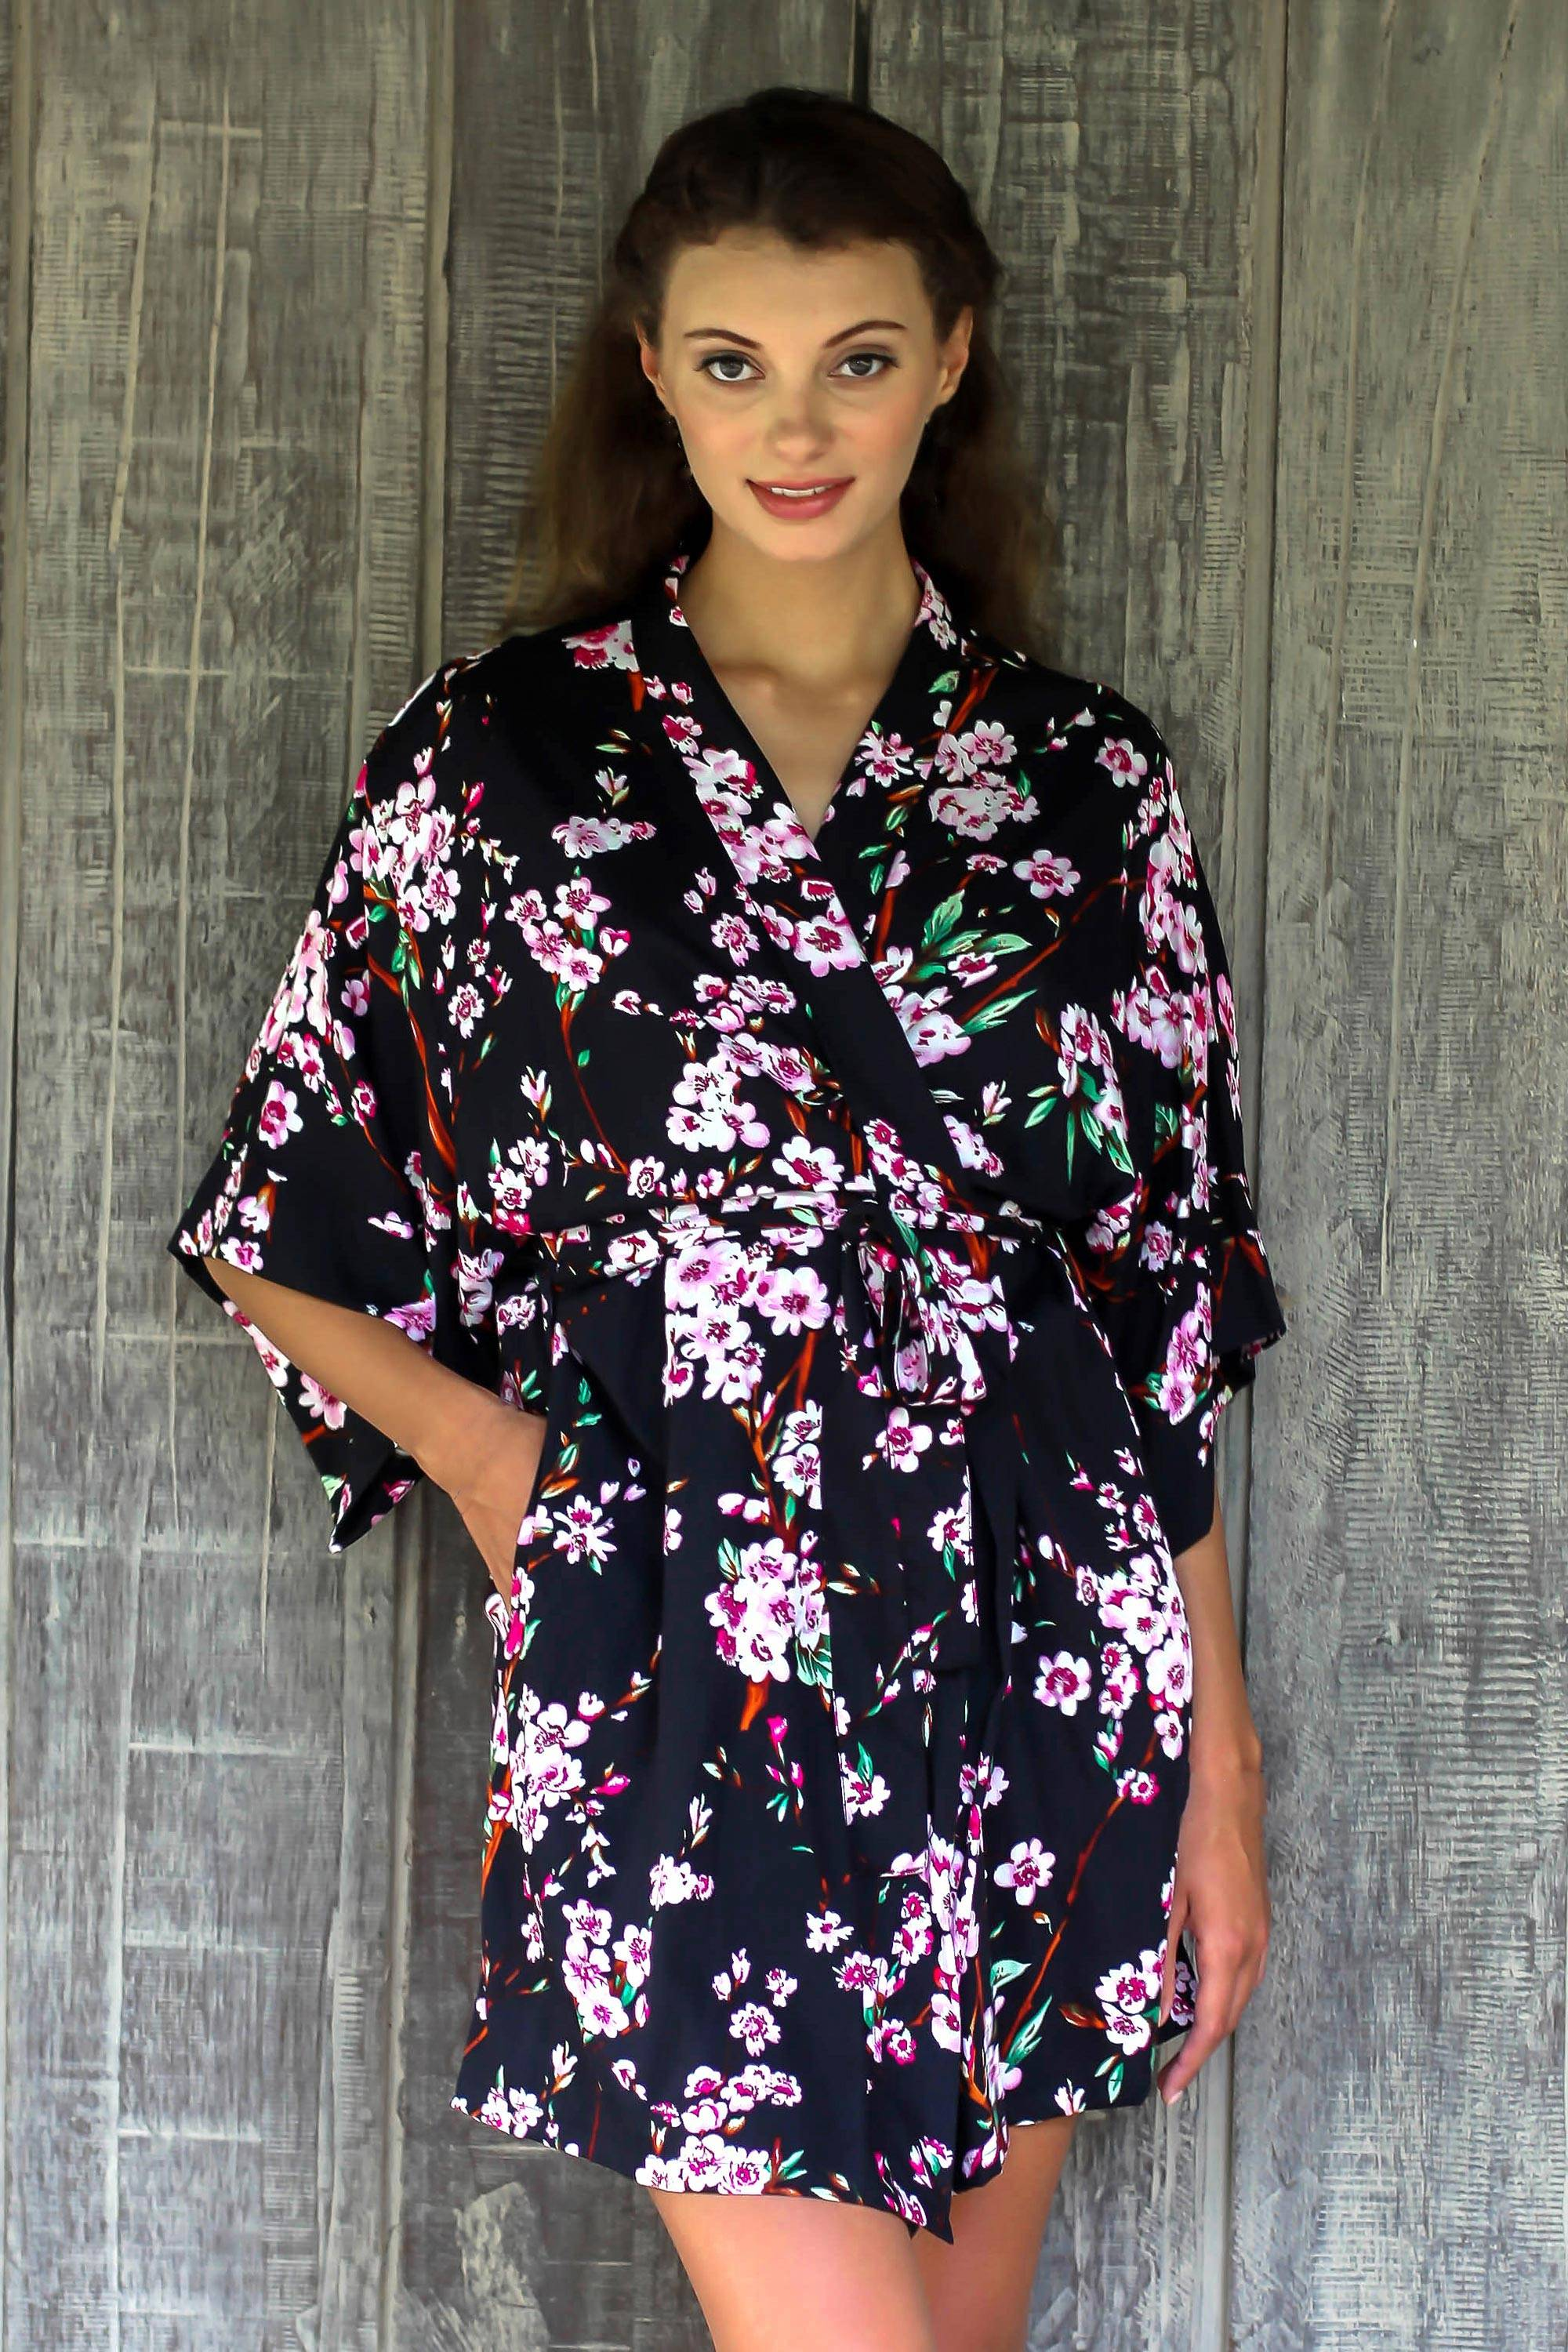 Spring Cherry Blossom Floral Rayon Robe in Black and Fuchsia from Indonesia Spring Accessories